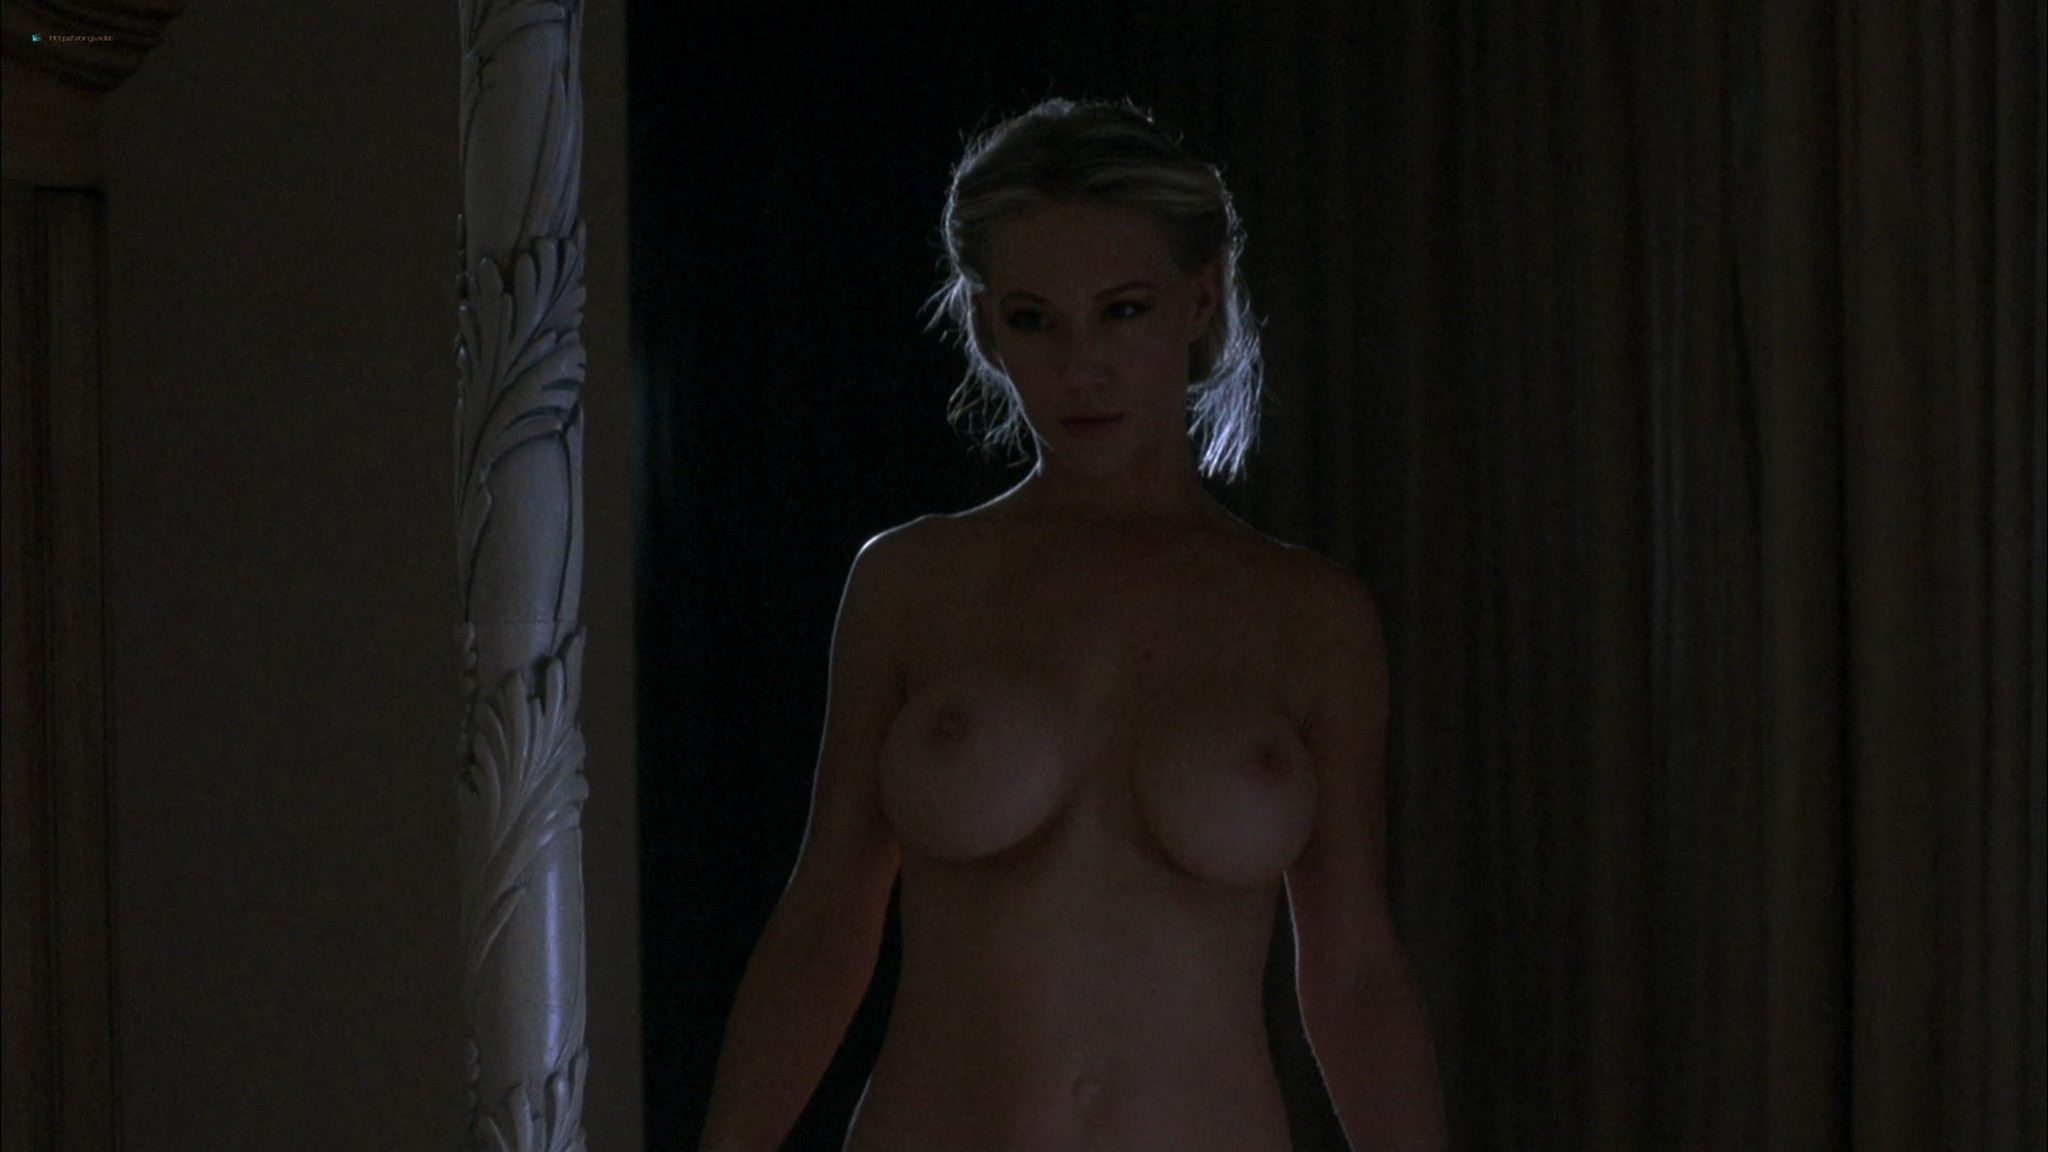 Kari Wuhrer wet and hot Amy Lindsay and others nude sex - Final Examination (2003) HD 1080p Web (5)